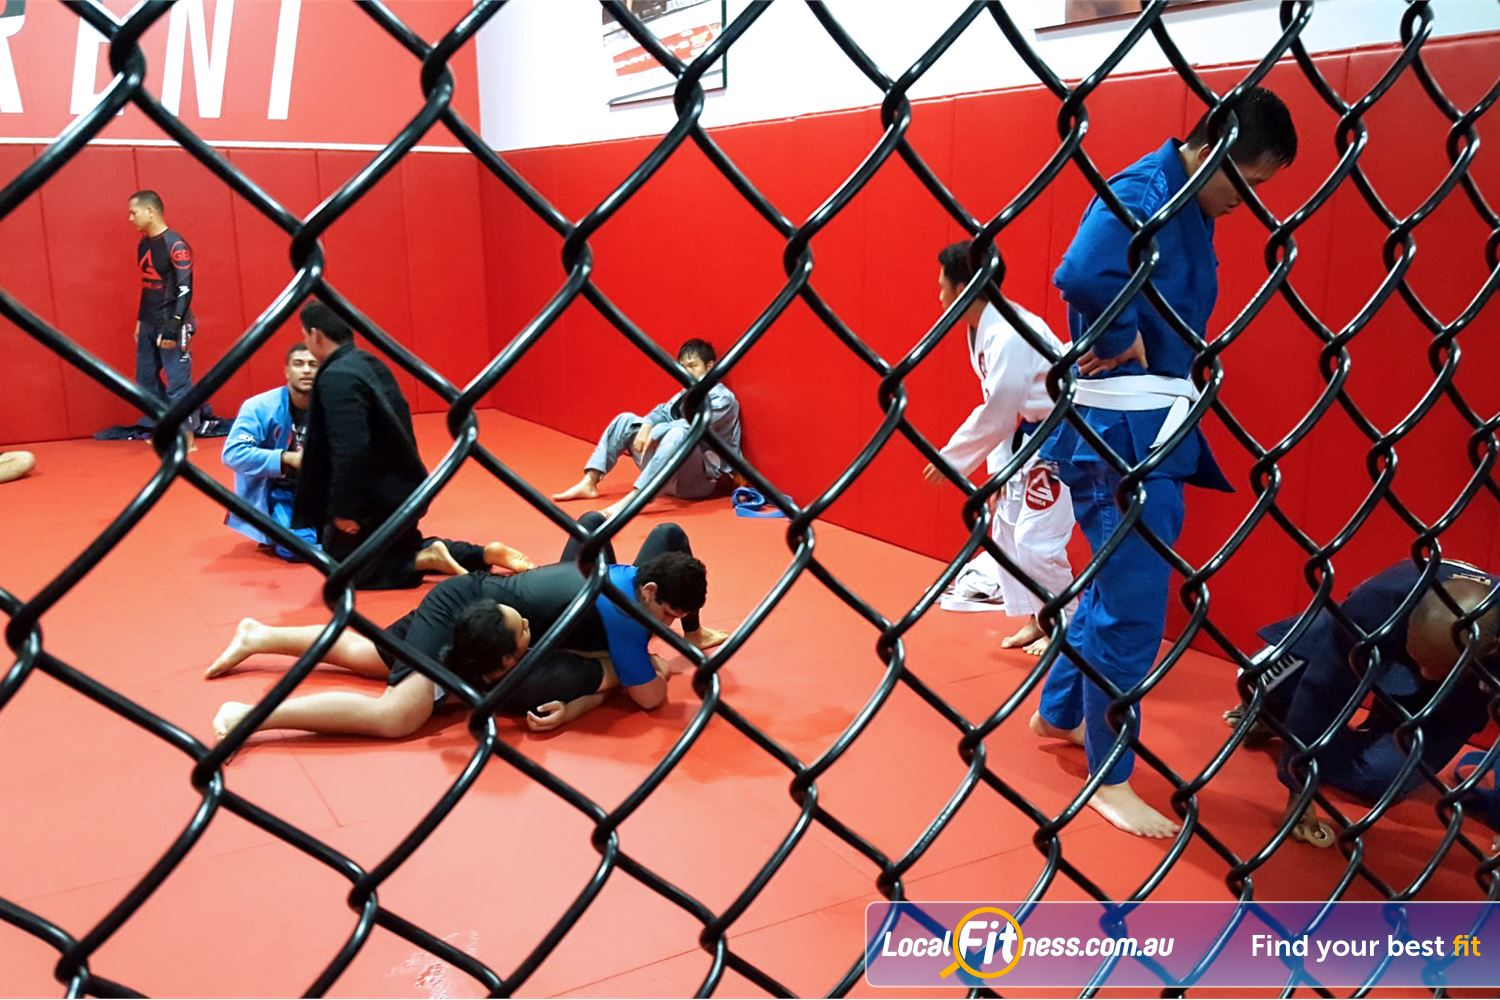 UFC Gym Near Marayong A full range of combat sports inc. boxing, kickboxing, wrestling, bjj and more.